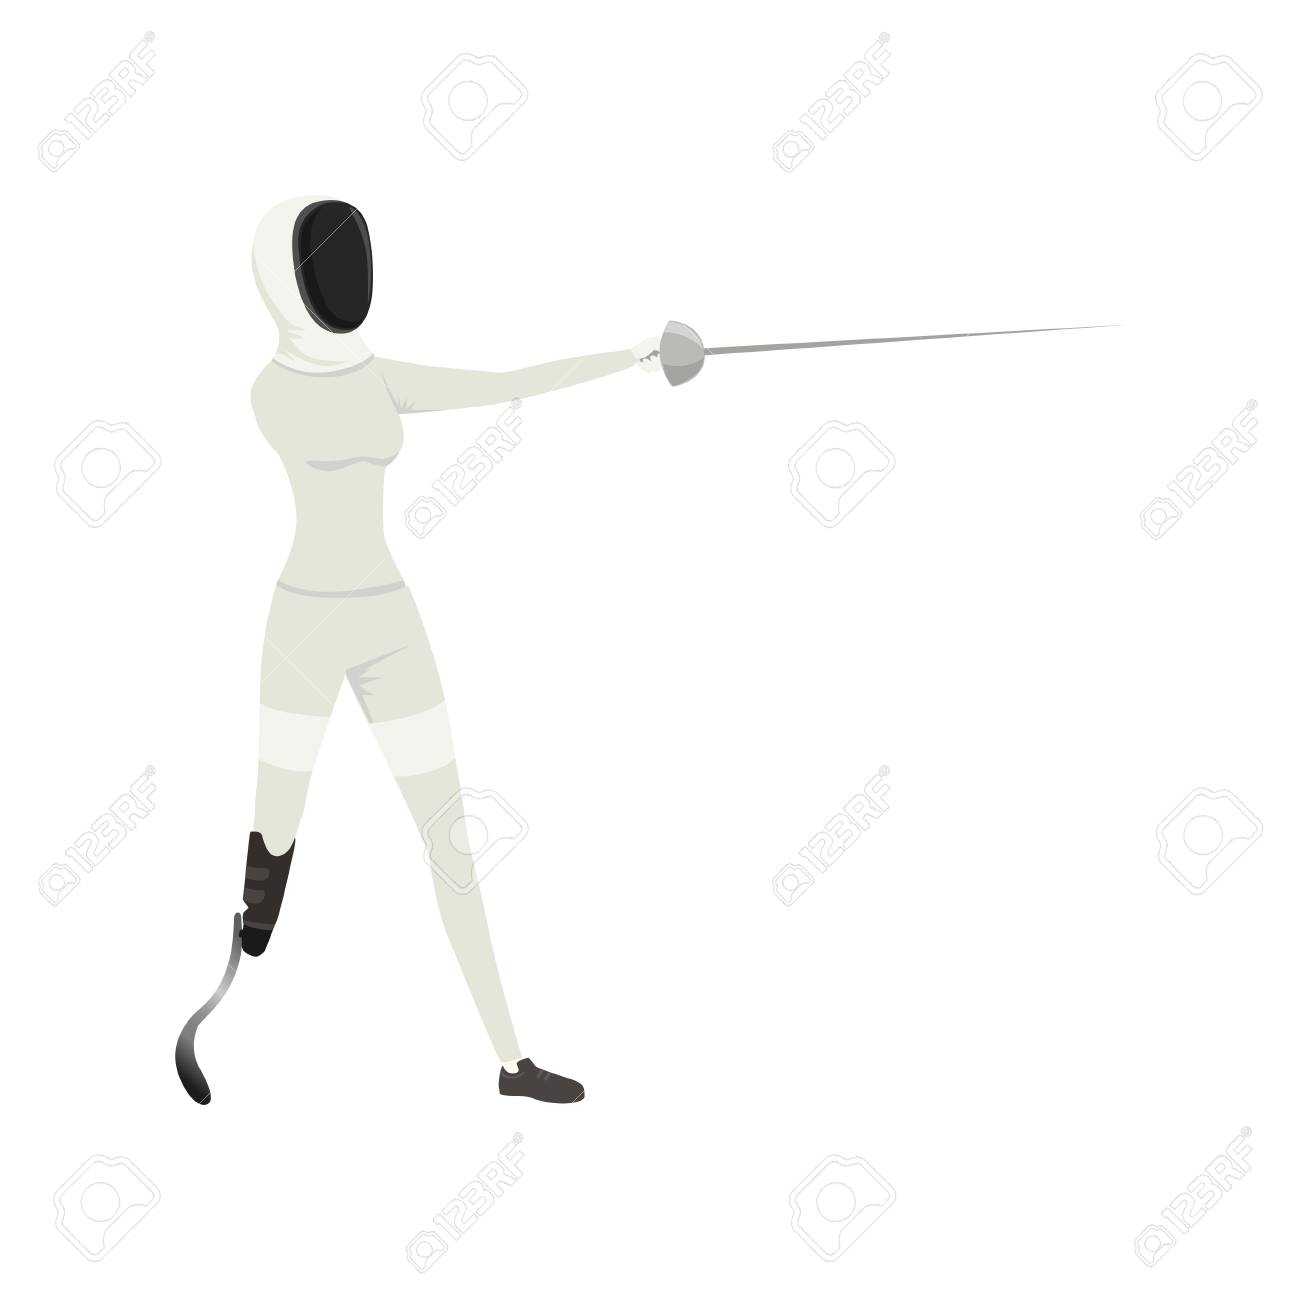 Cartoon athlete with physical disabilities fencing with rapier